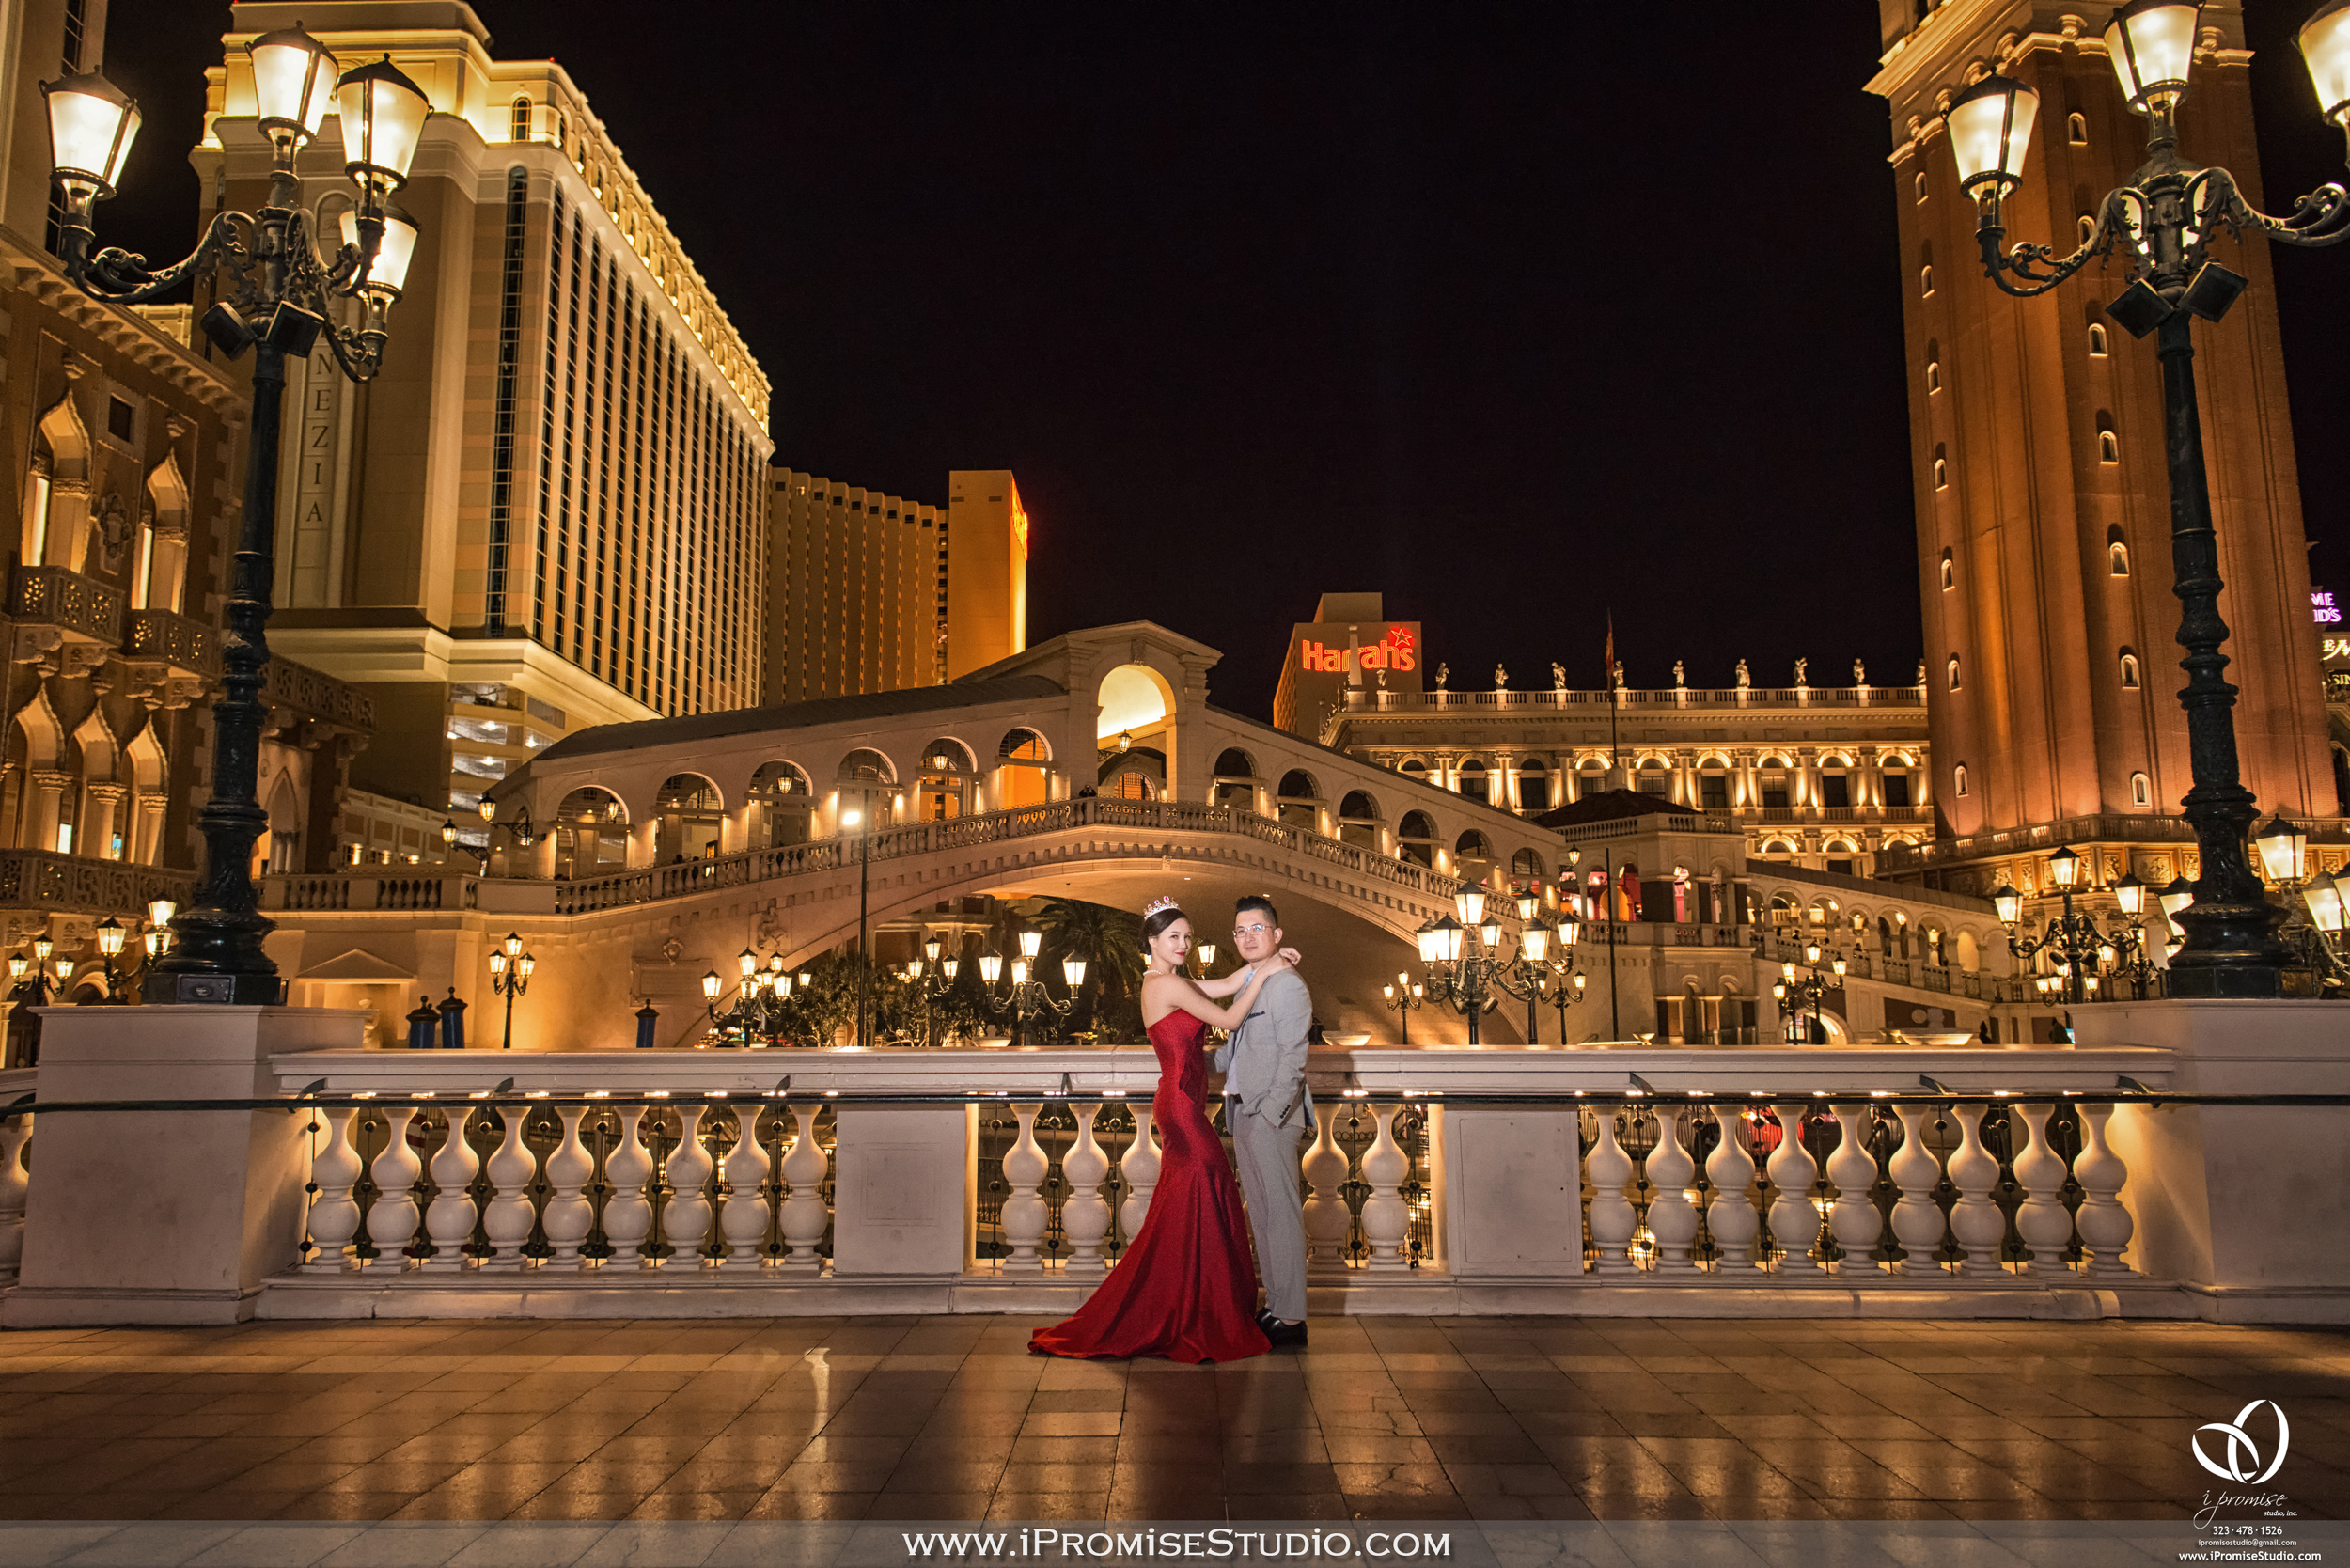 Las Vegas Venetian Hotel night view-engagement wedding 04.JPG